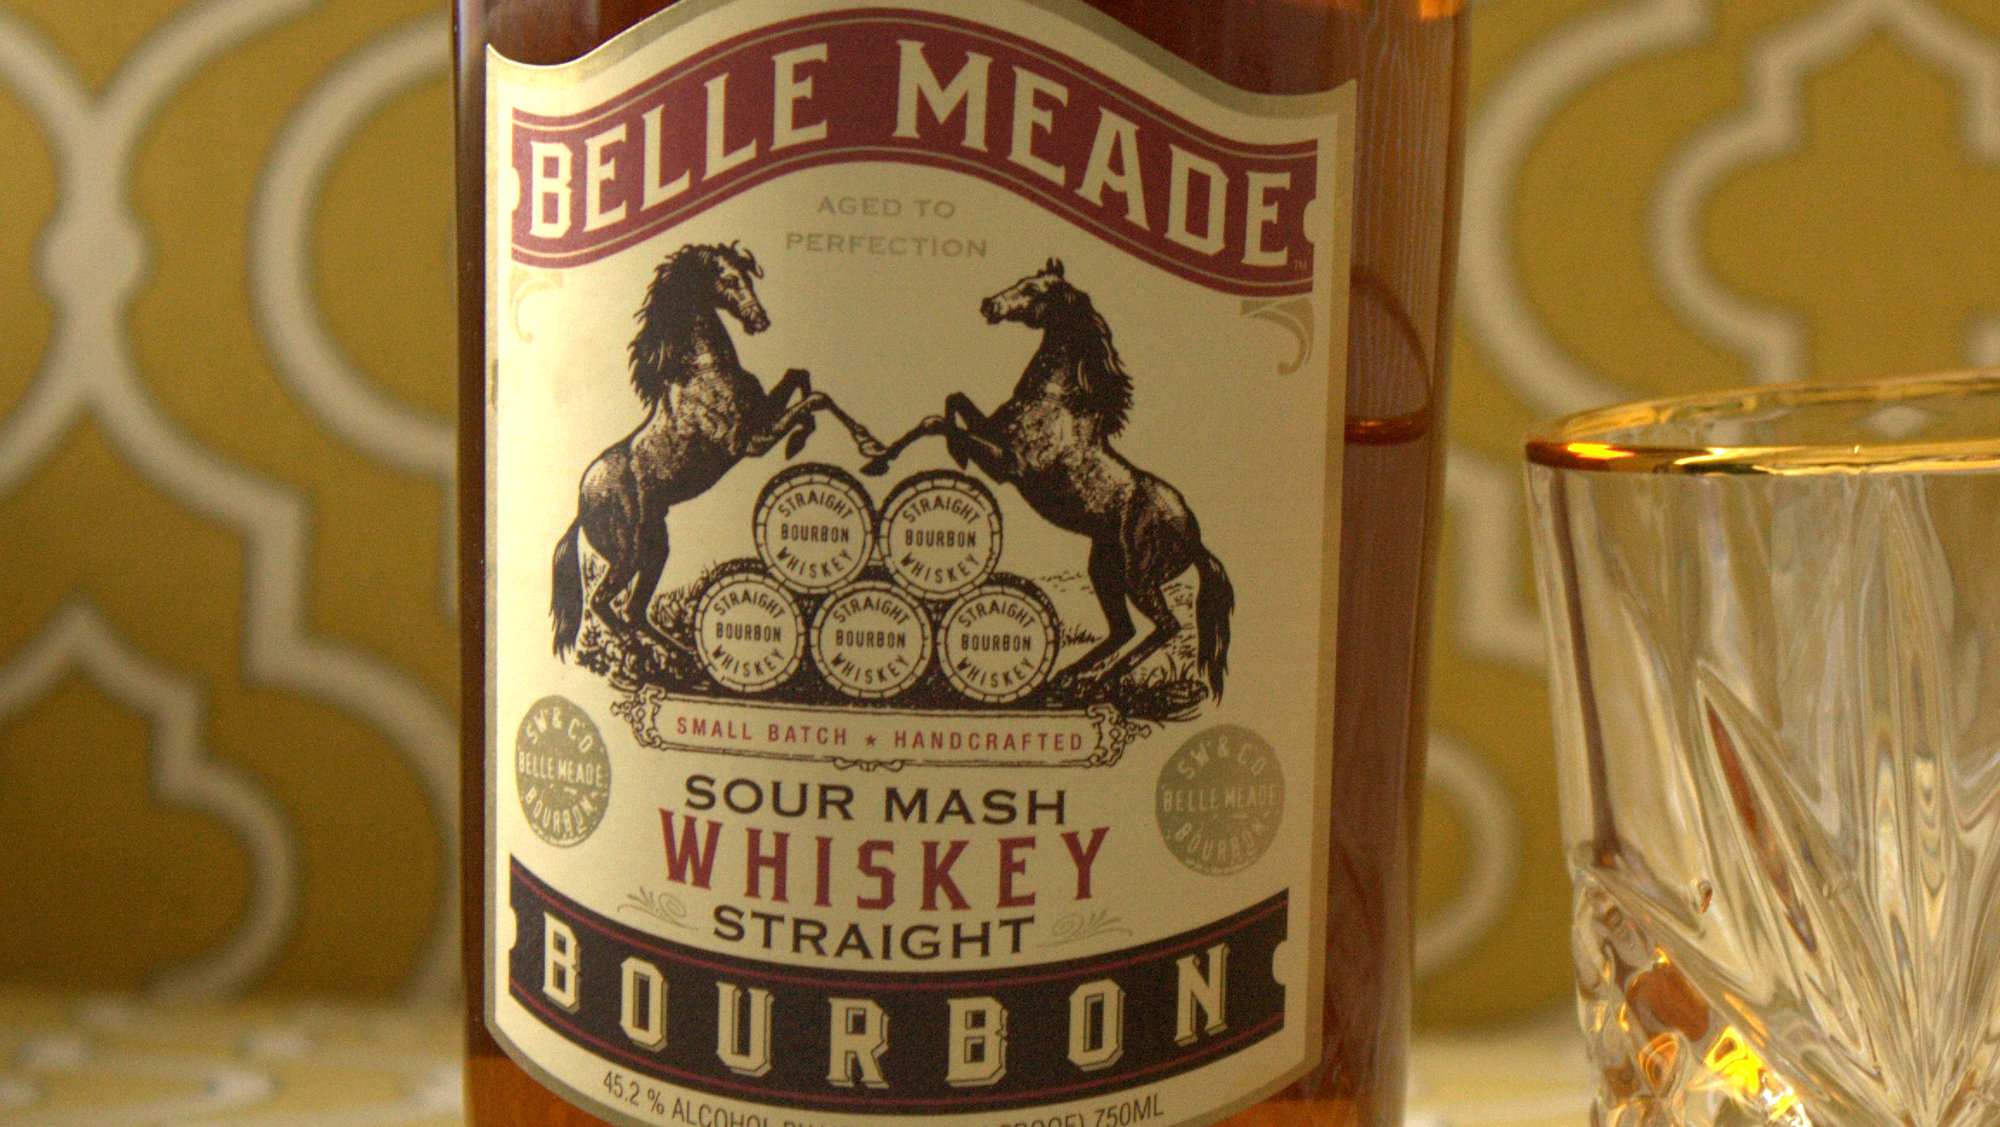 belle meade sour mash straight bourbon label